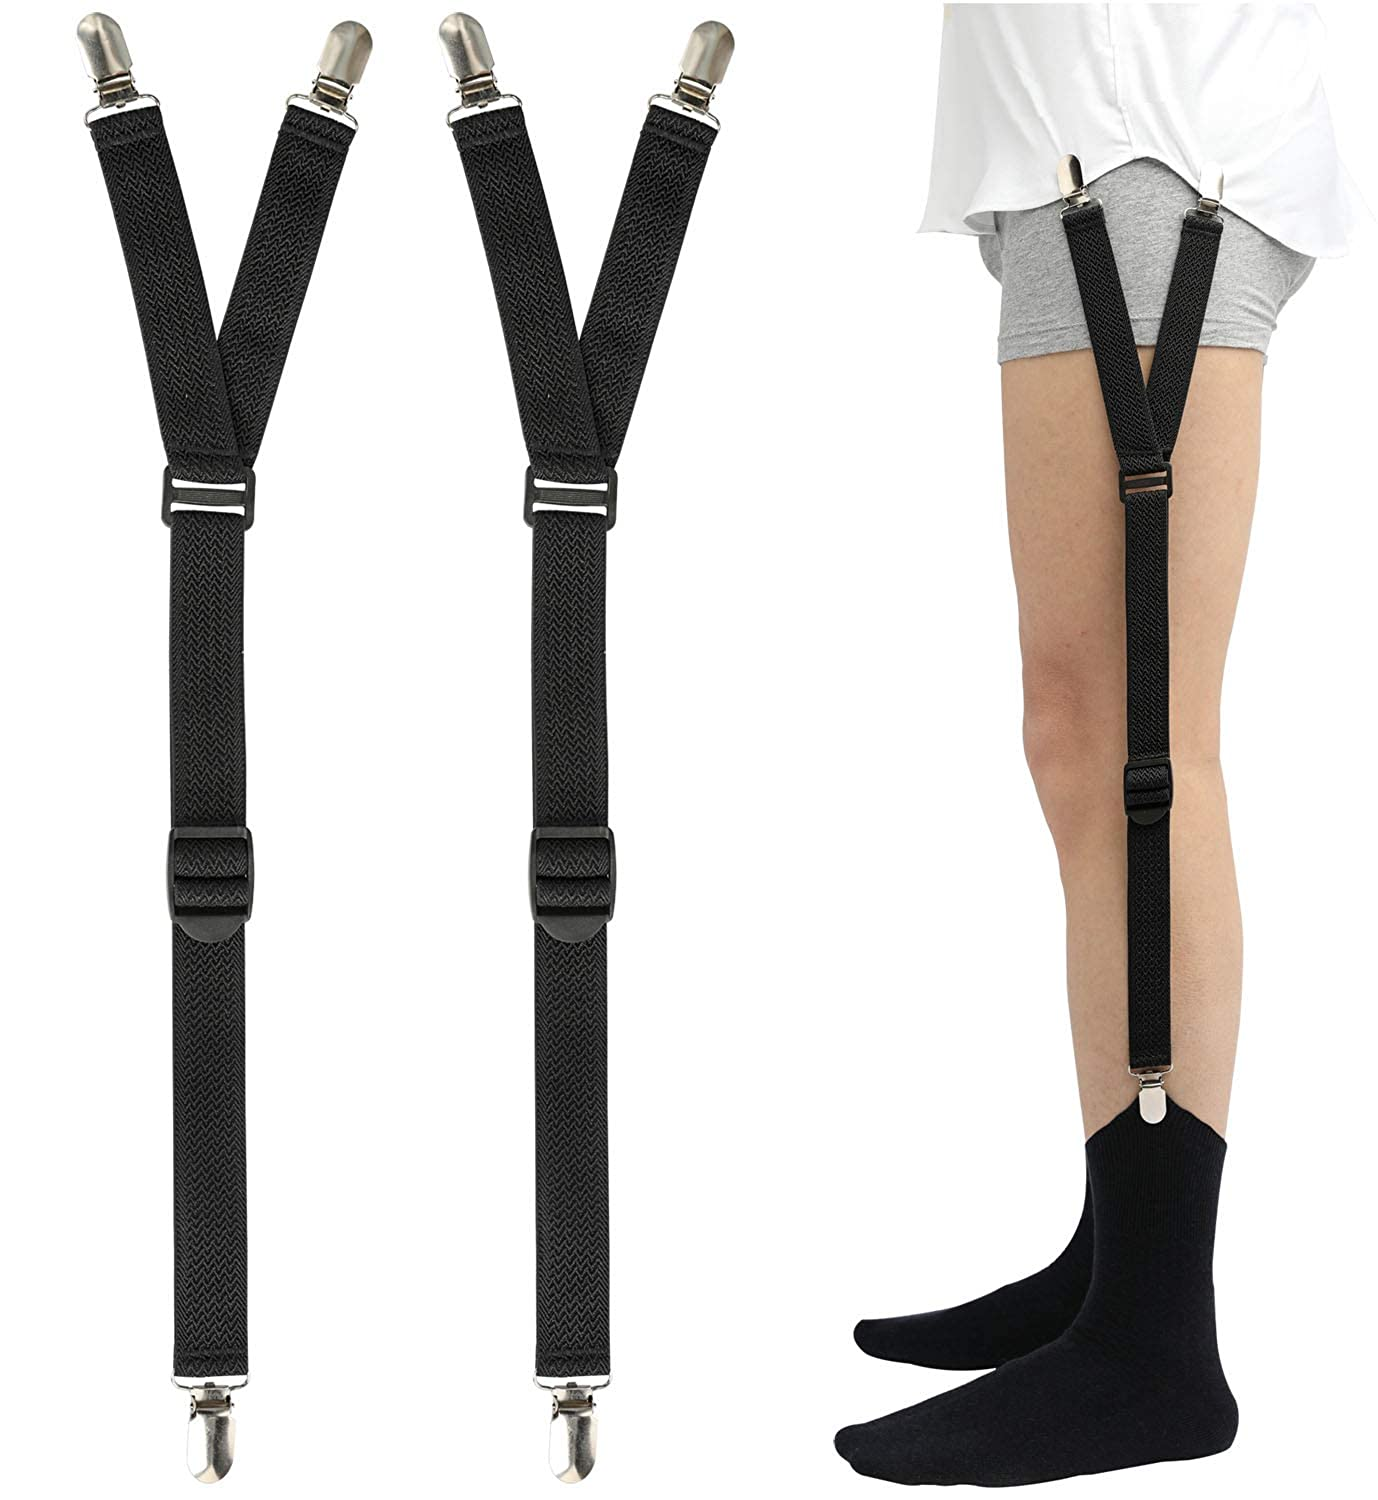 Shirt Stays Adjustable Soft and Smooth Elastic with Non Slip Clips Perfect Sock Garters for Military or Professional